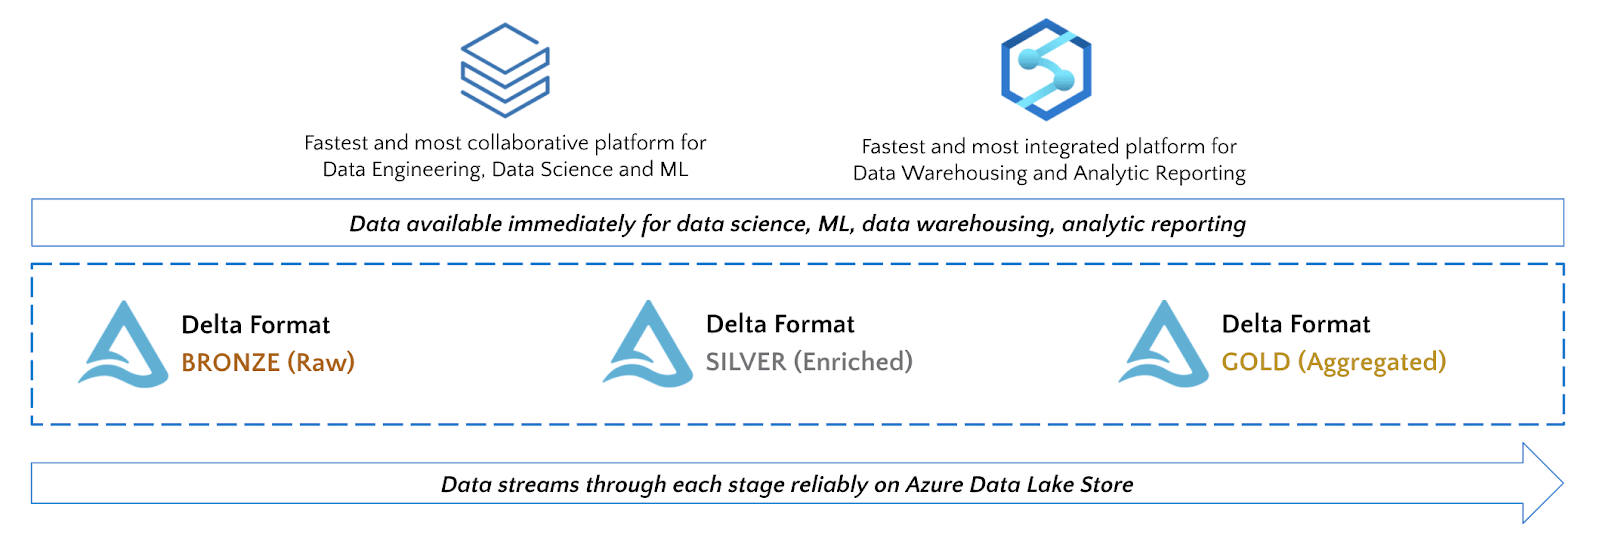 While leveraging Azure Databricks and Azure Synapse, use the best tool for the job given your team's requirements.